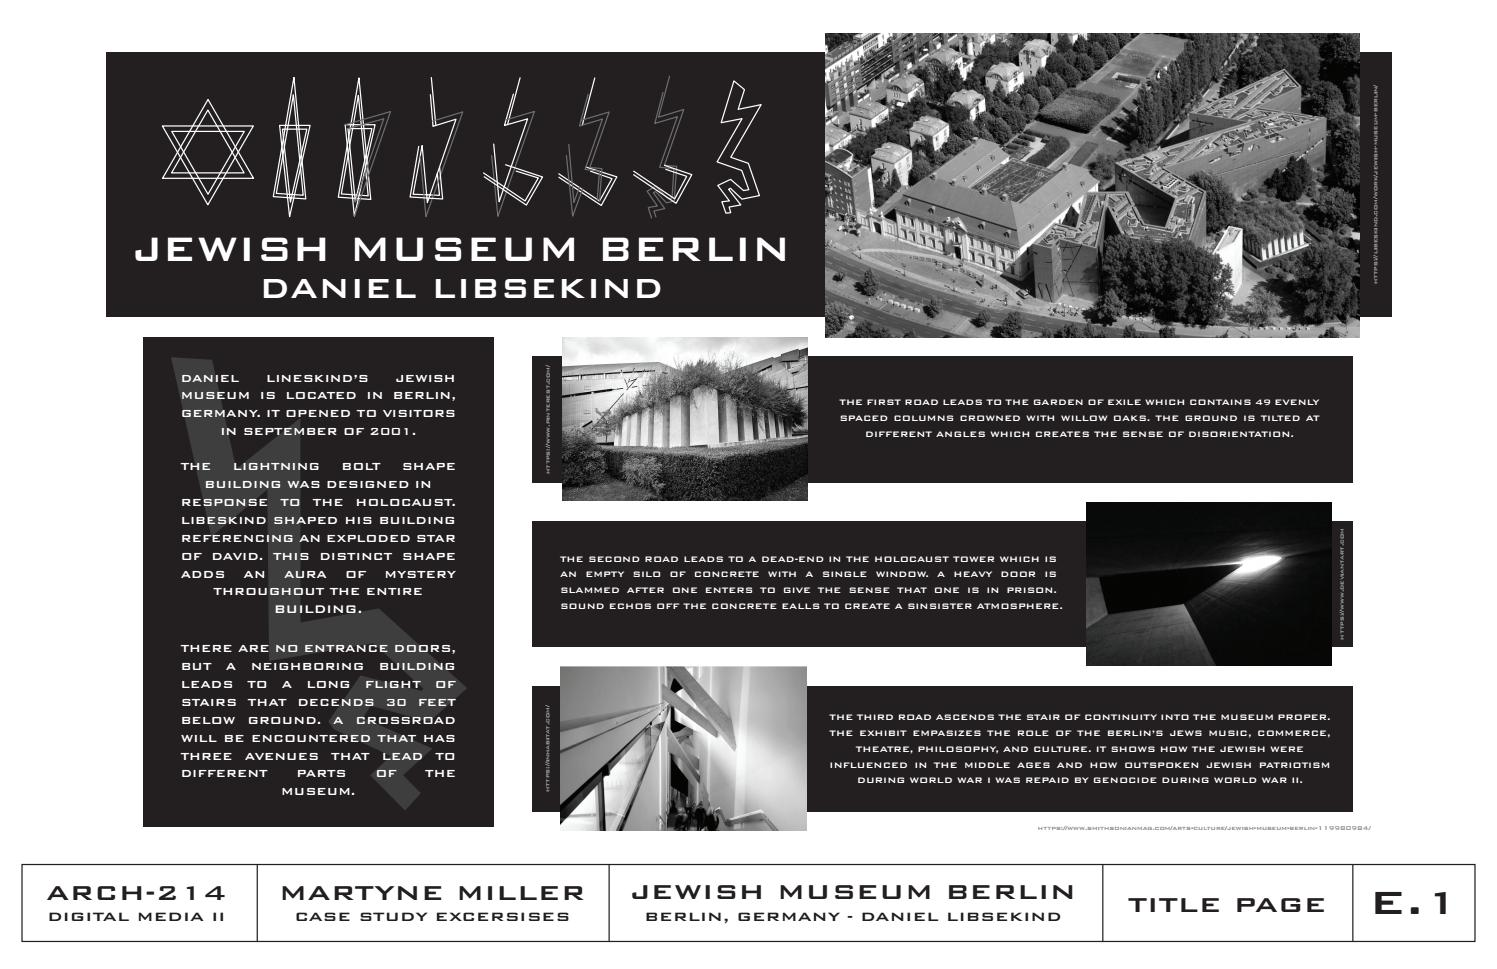 Jewish Museum Berlin Architectural Case Study By Martynemiller Issuu